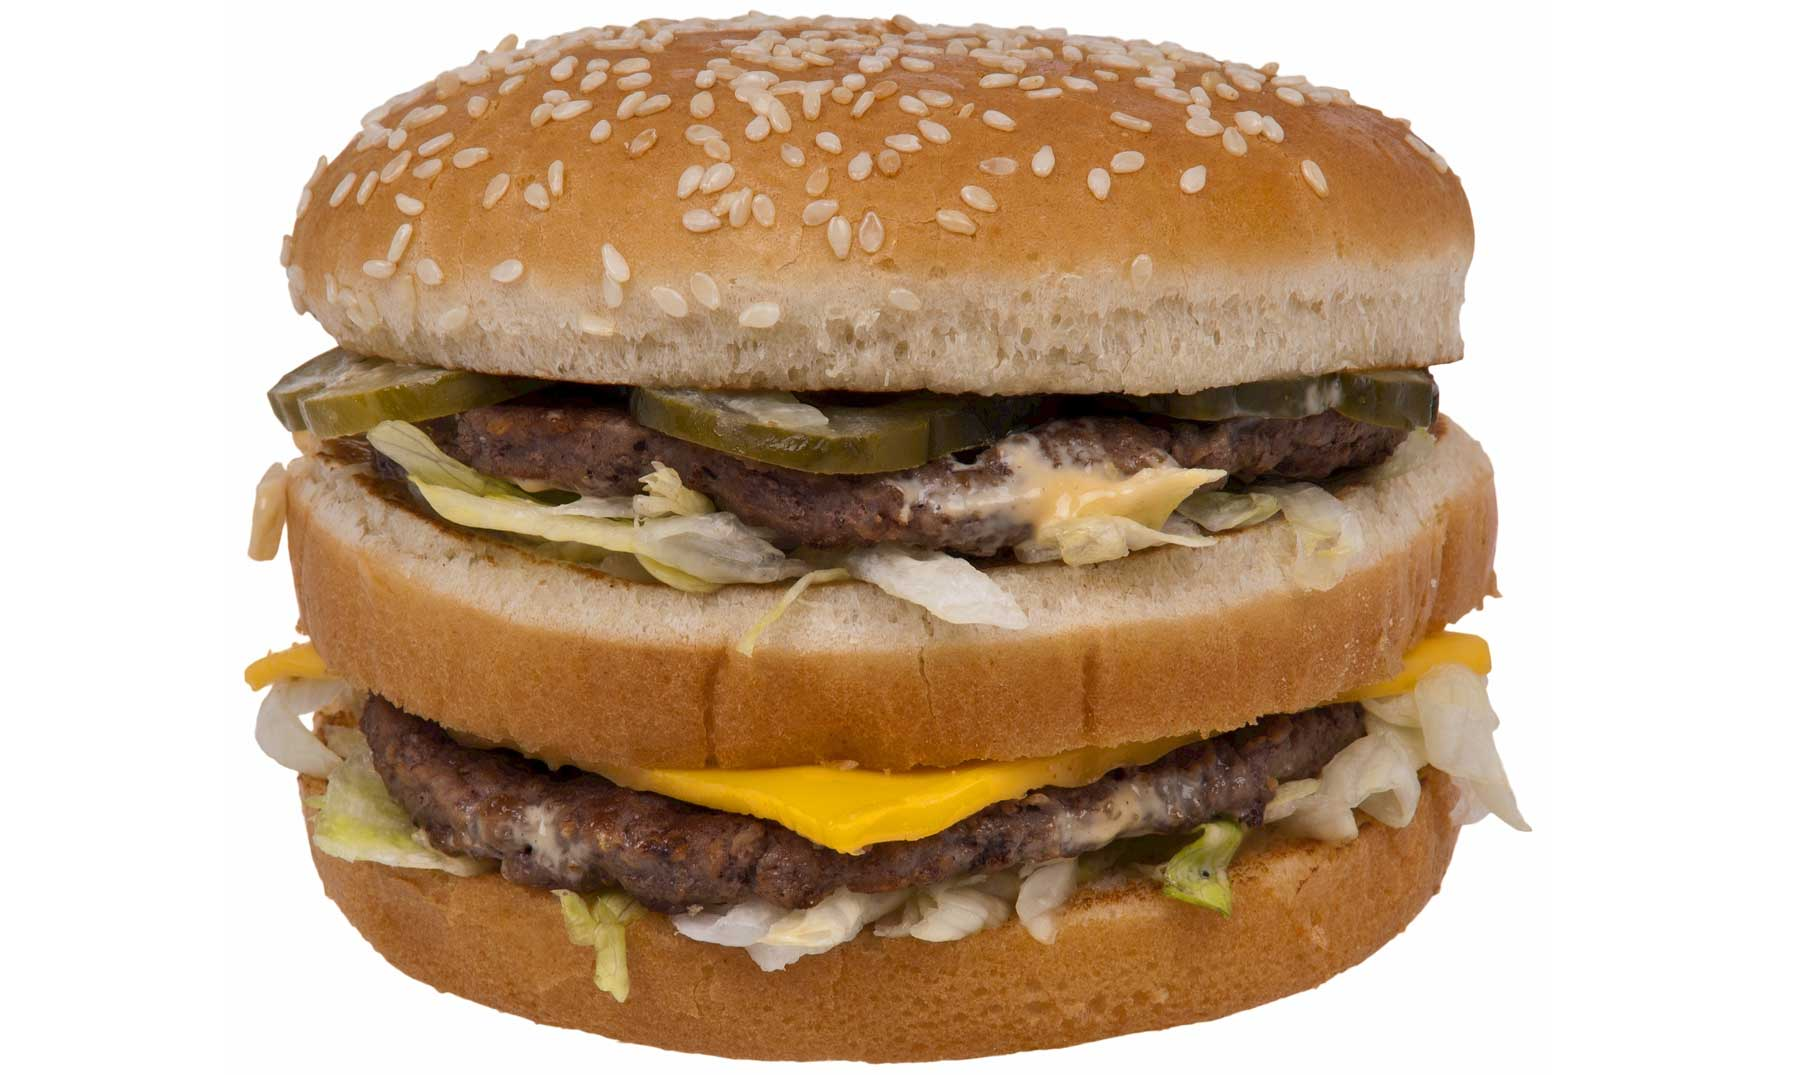 La hamburguesa indestructible de McDonald's